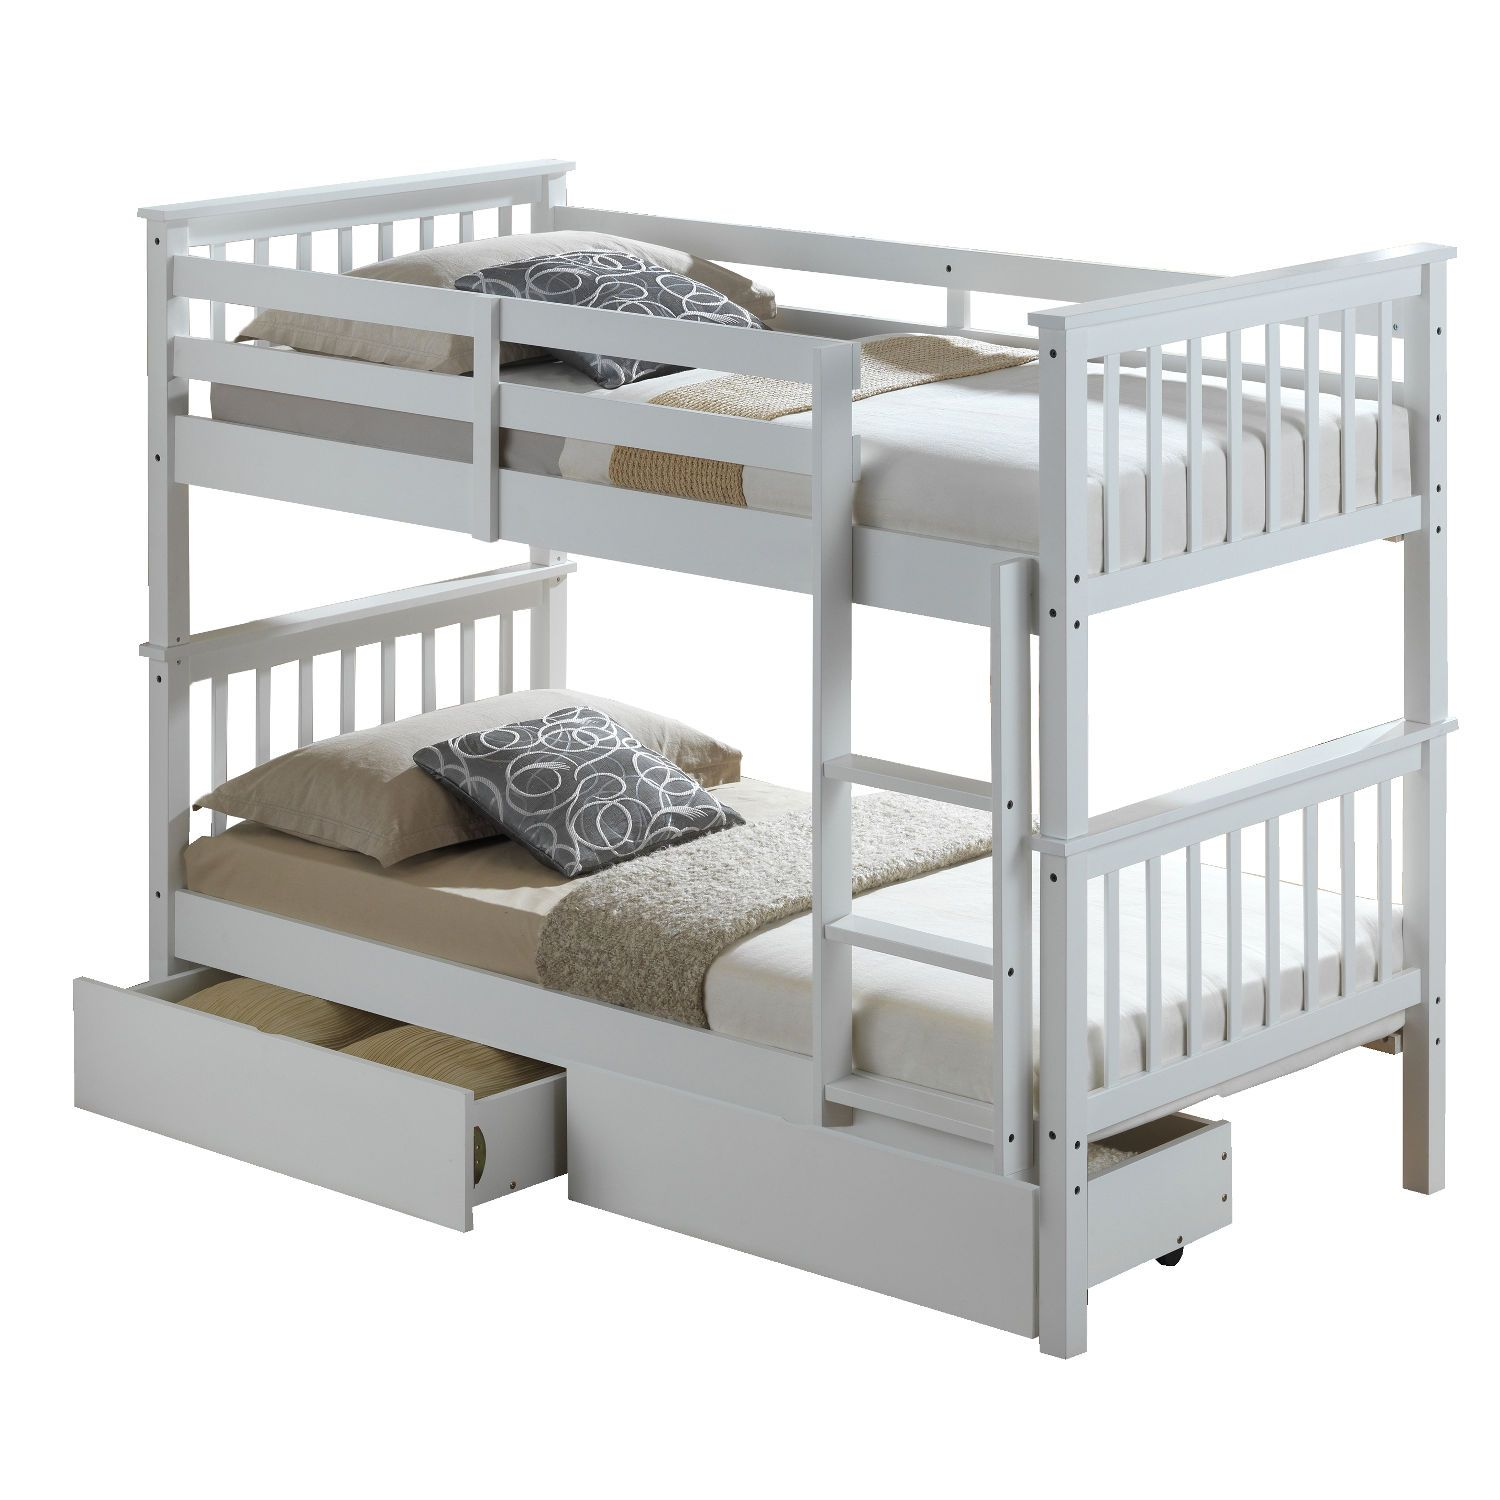 Artisan White Bunk Bed Next Day Select Day Delivery Witterings